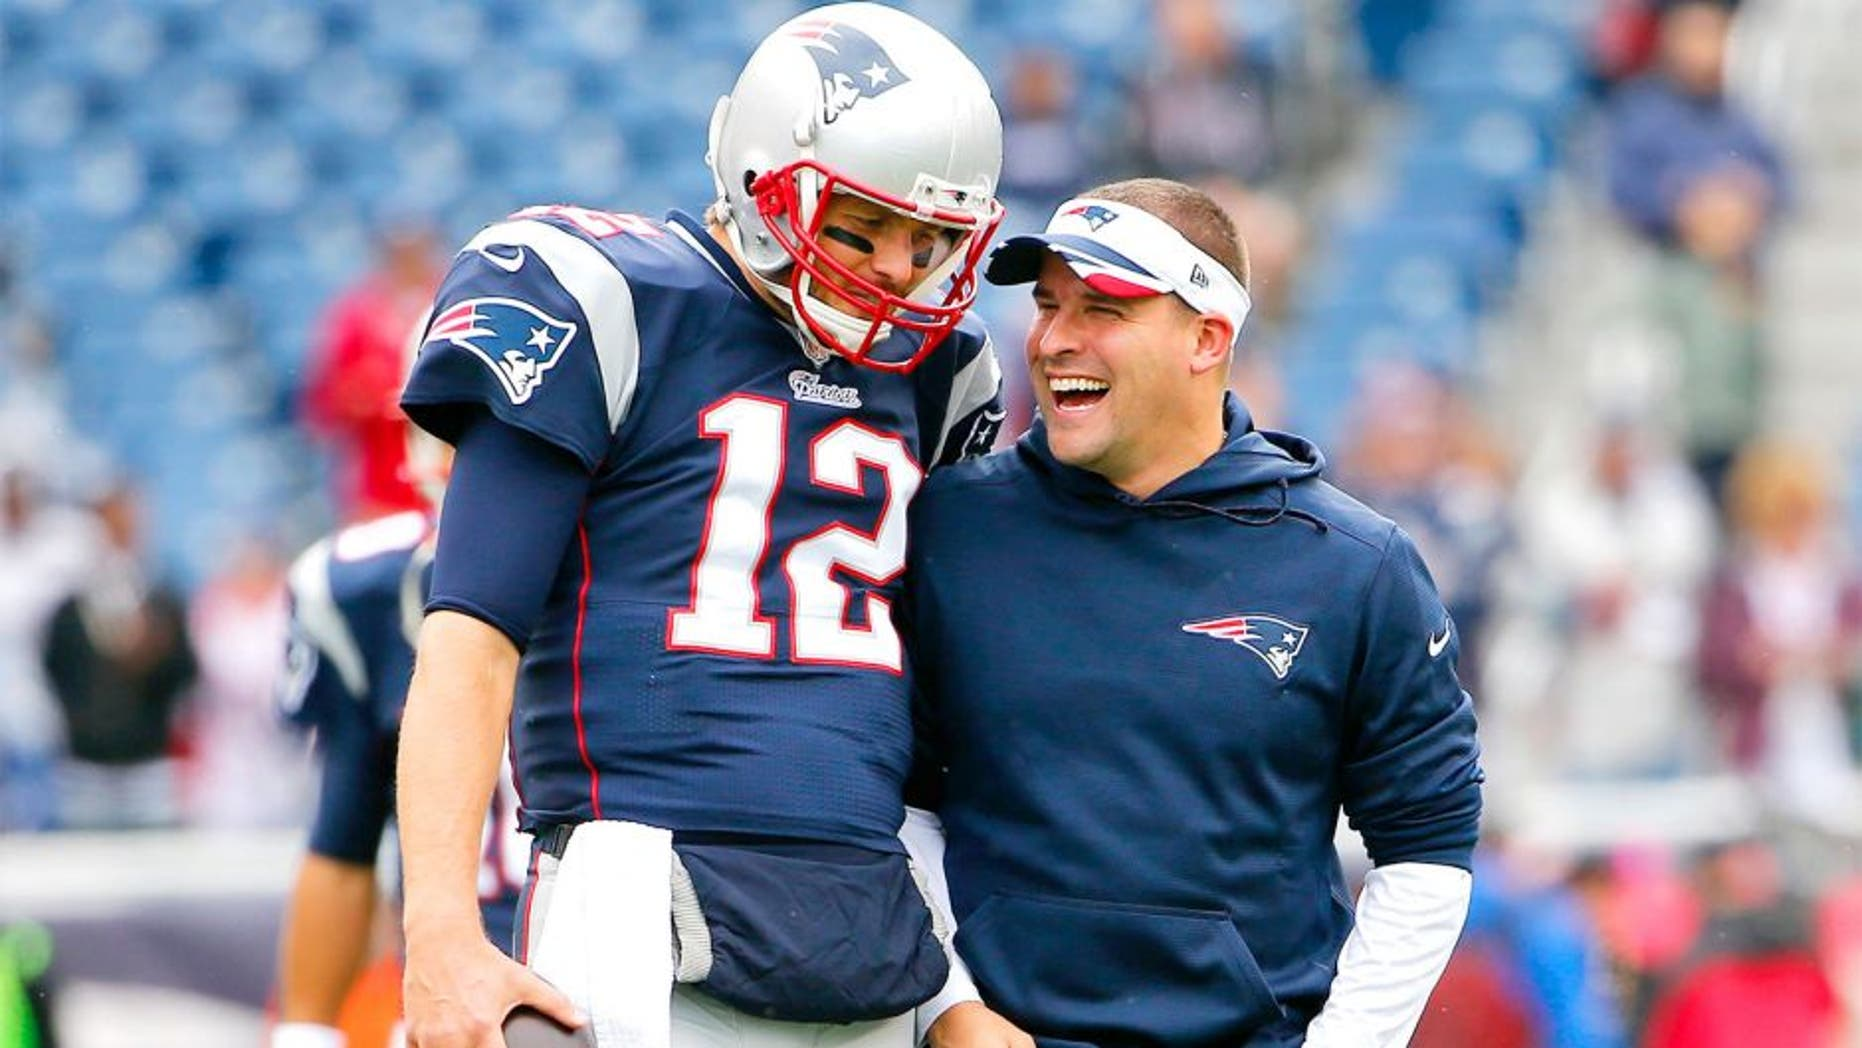 Oct 26, 2014; Foxborough, MA, USA; New England Patriots quarterback Tom Brady has a laugh with offensive coordinator Josh McDaniels before the game between the New England Patriots and the Chicago Bears at Gillette Stadium. Mandatory Credit: Winslow Townson-USA TODAY Sports